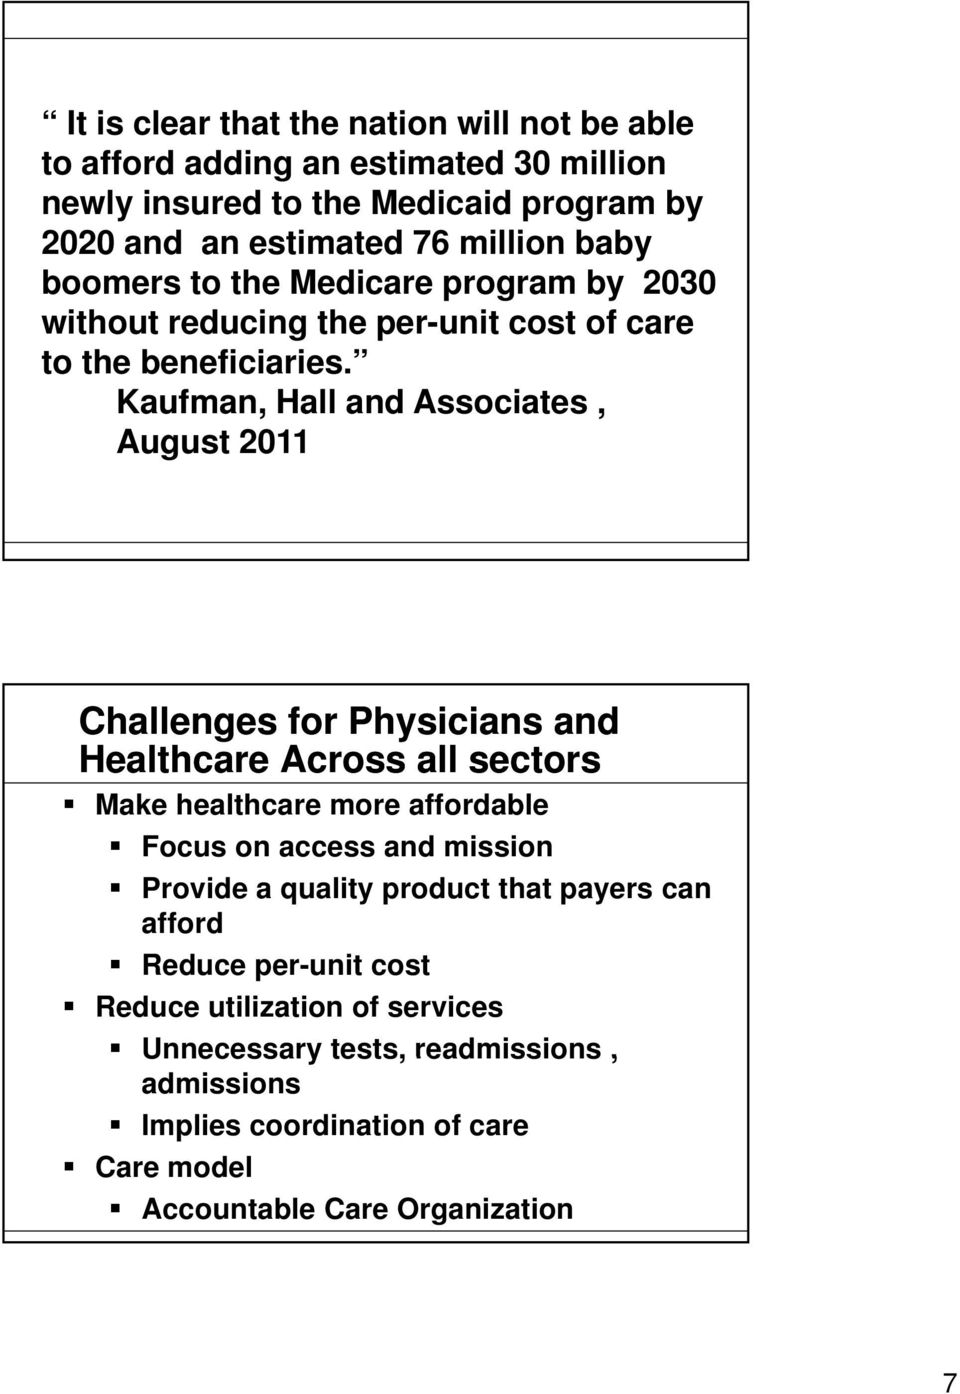 Kaufman, Hall and Associates, August 2011 Challenges for Physicians and Healthcare Across all sectors Make healthcare more affordable Focus on access and mission